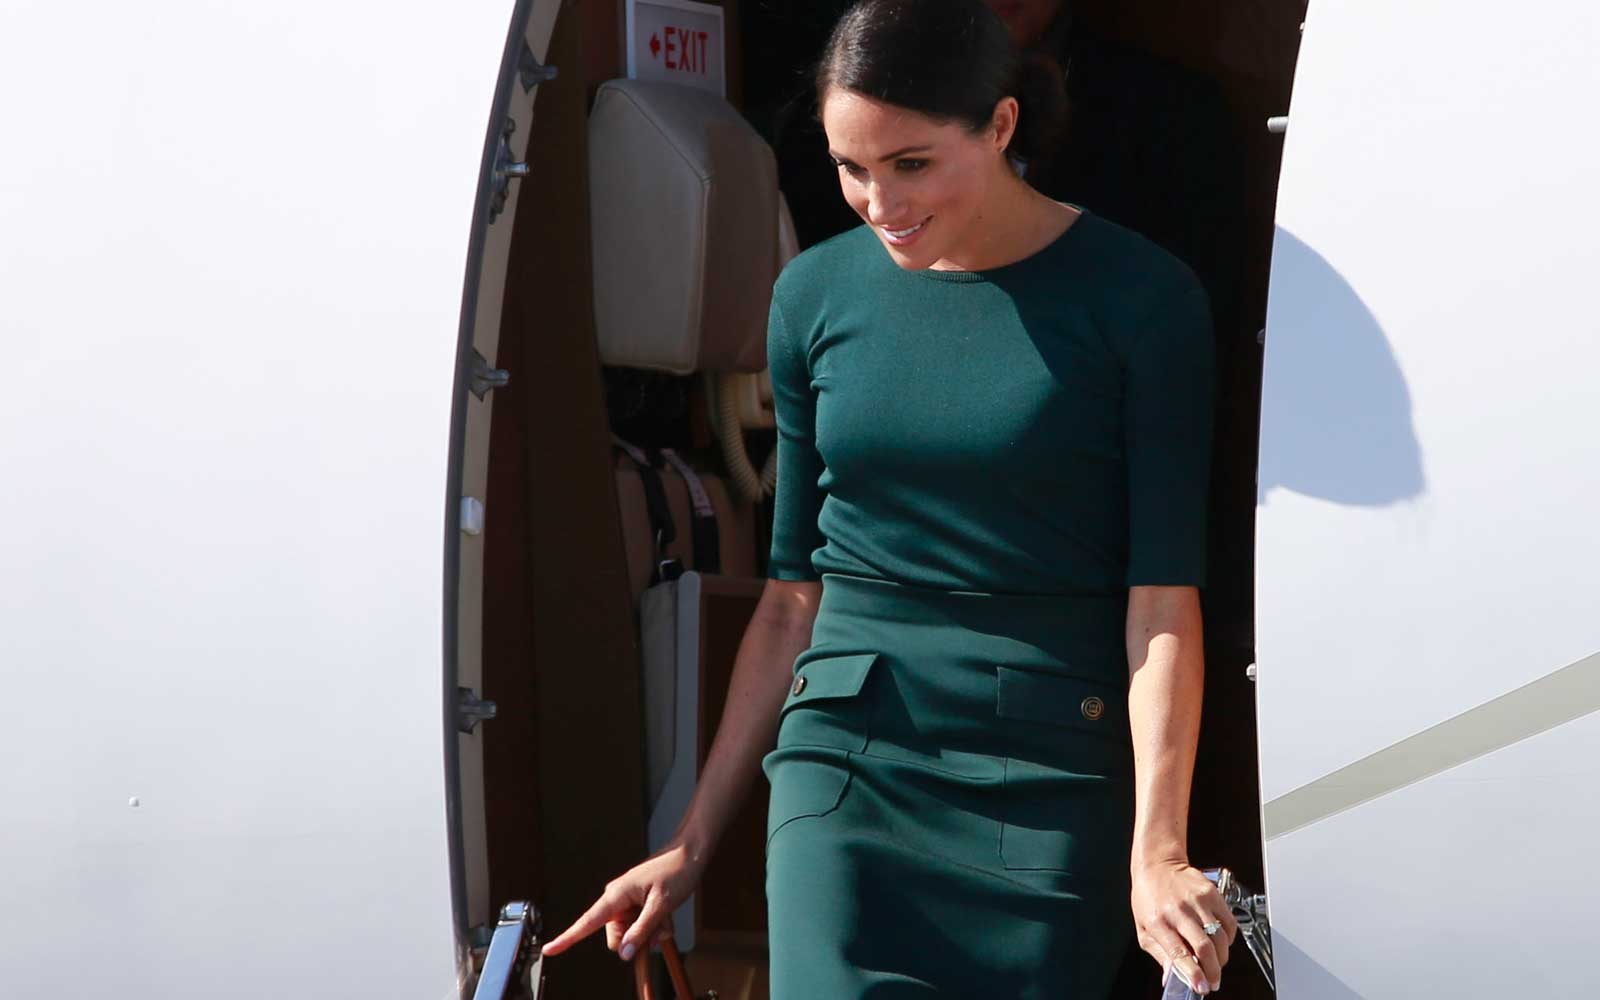 Meghan, Duchess of Sussex arrives at Dublin airport at the start of a two day visit to Ireland on July 10, 2018.